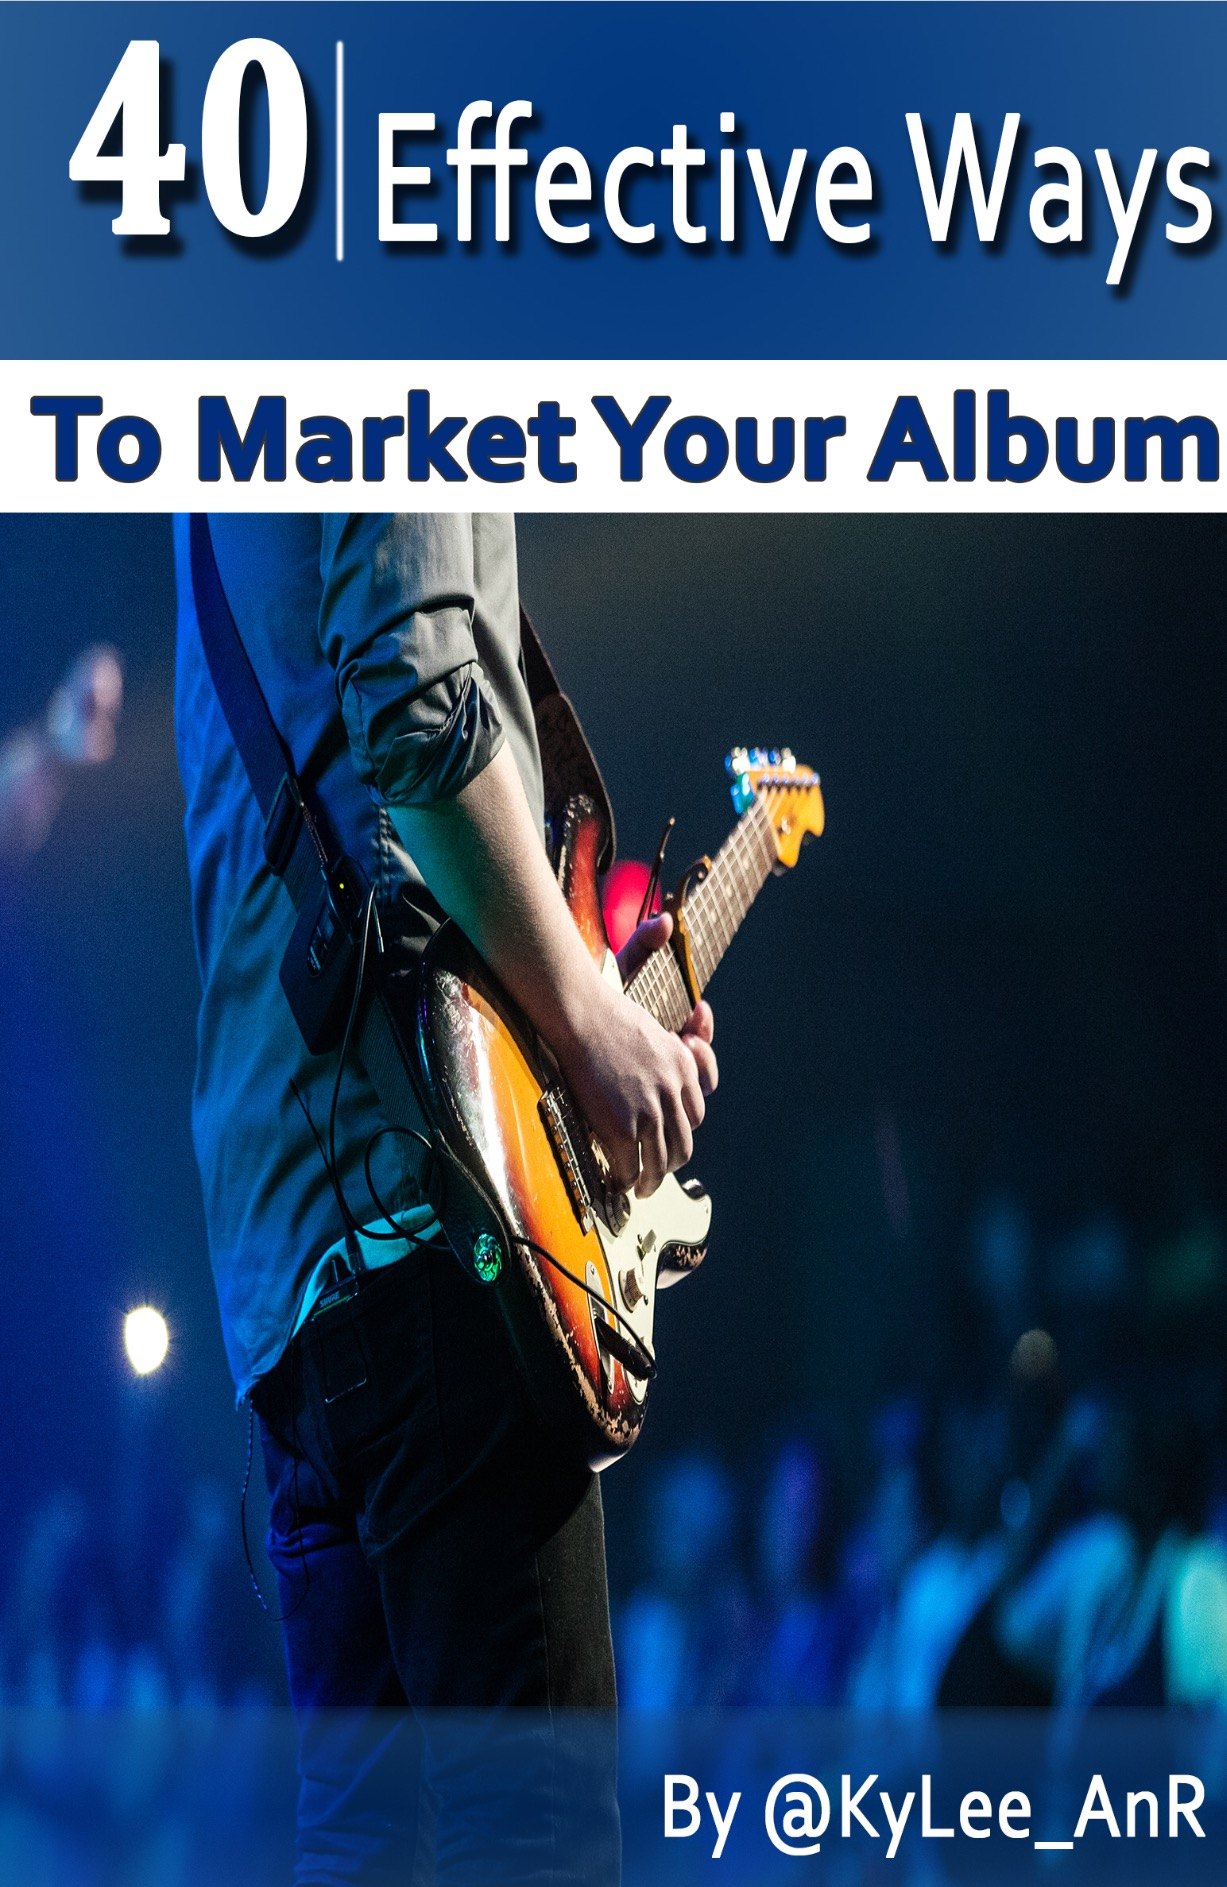 40 EFFECTIVE WAYS TO MARKET YOUR ALBUM